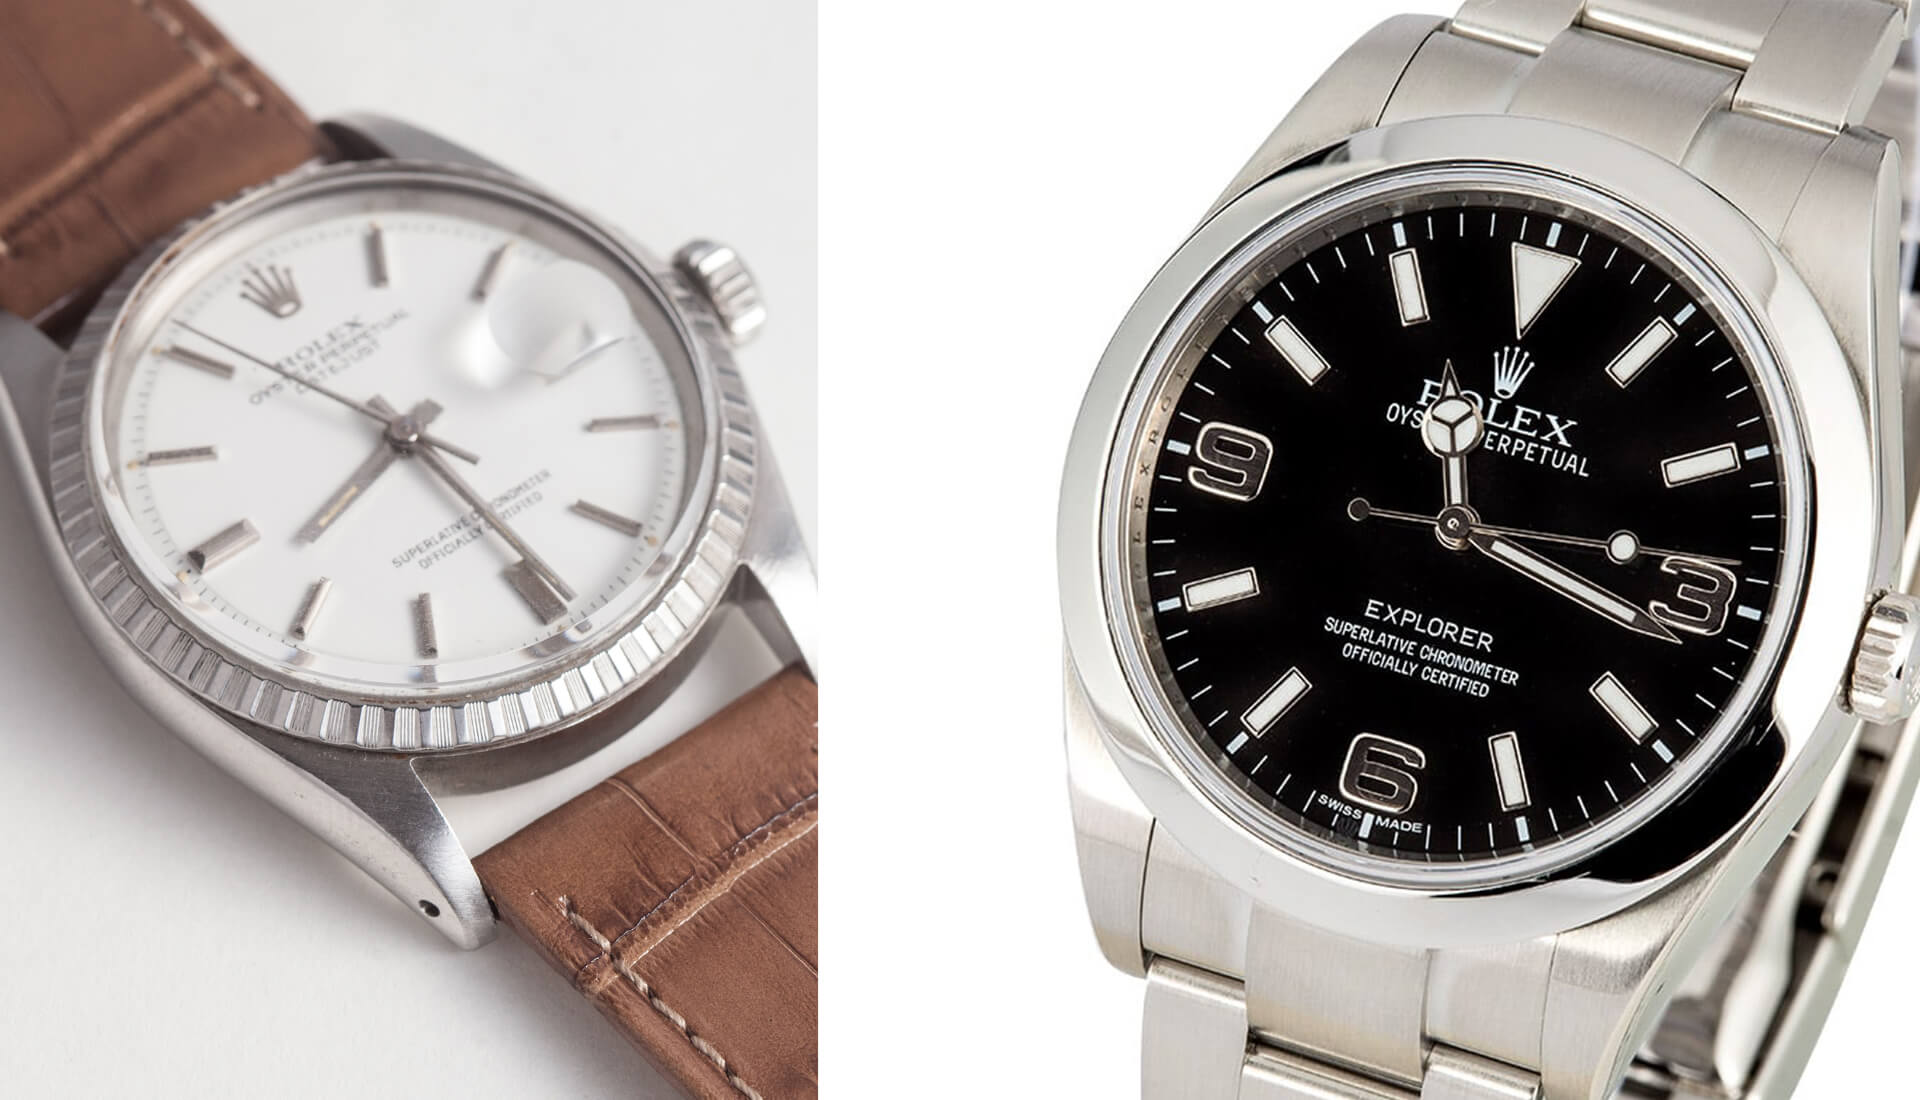 Watch 101: Only Rolex – Explorer I or Datejust?